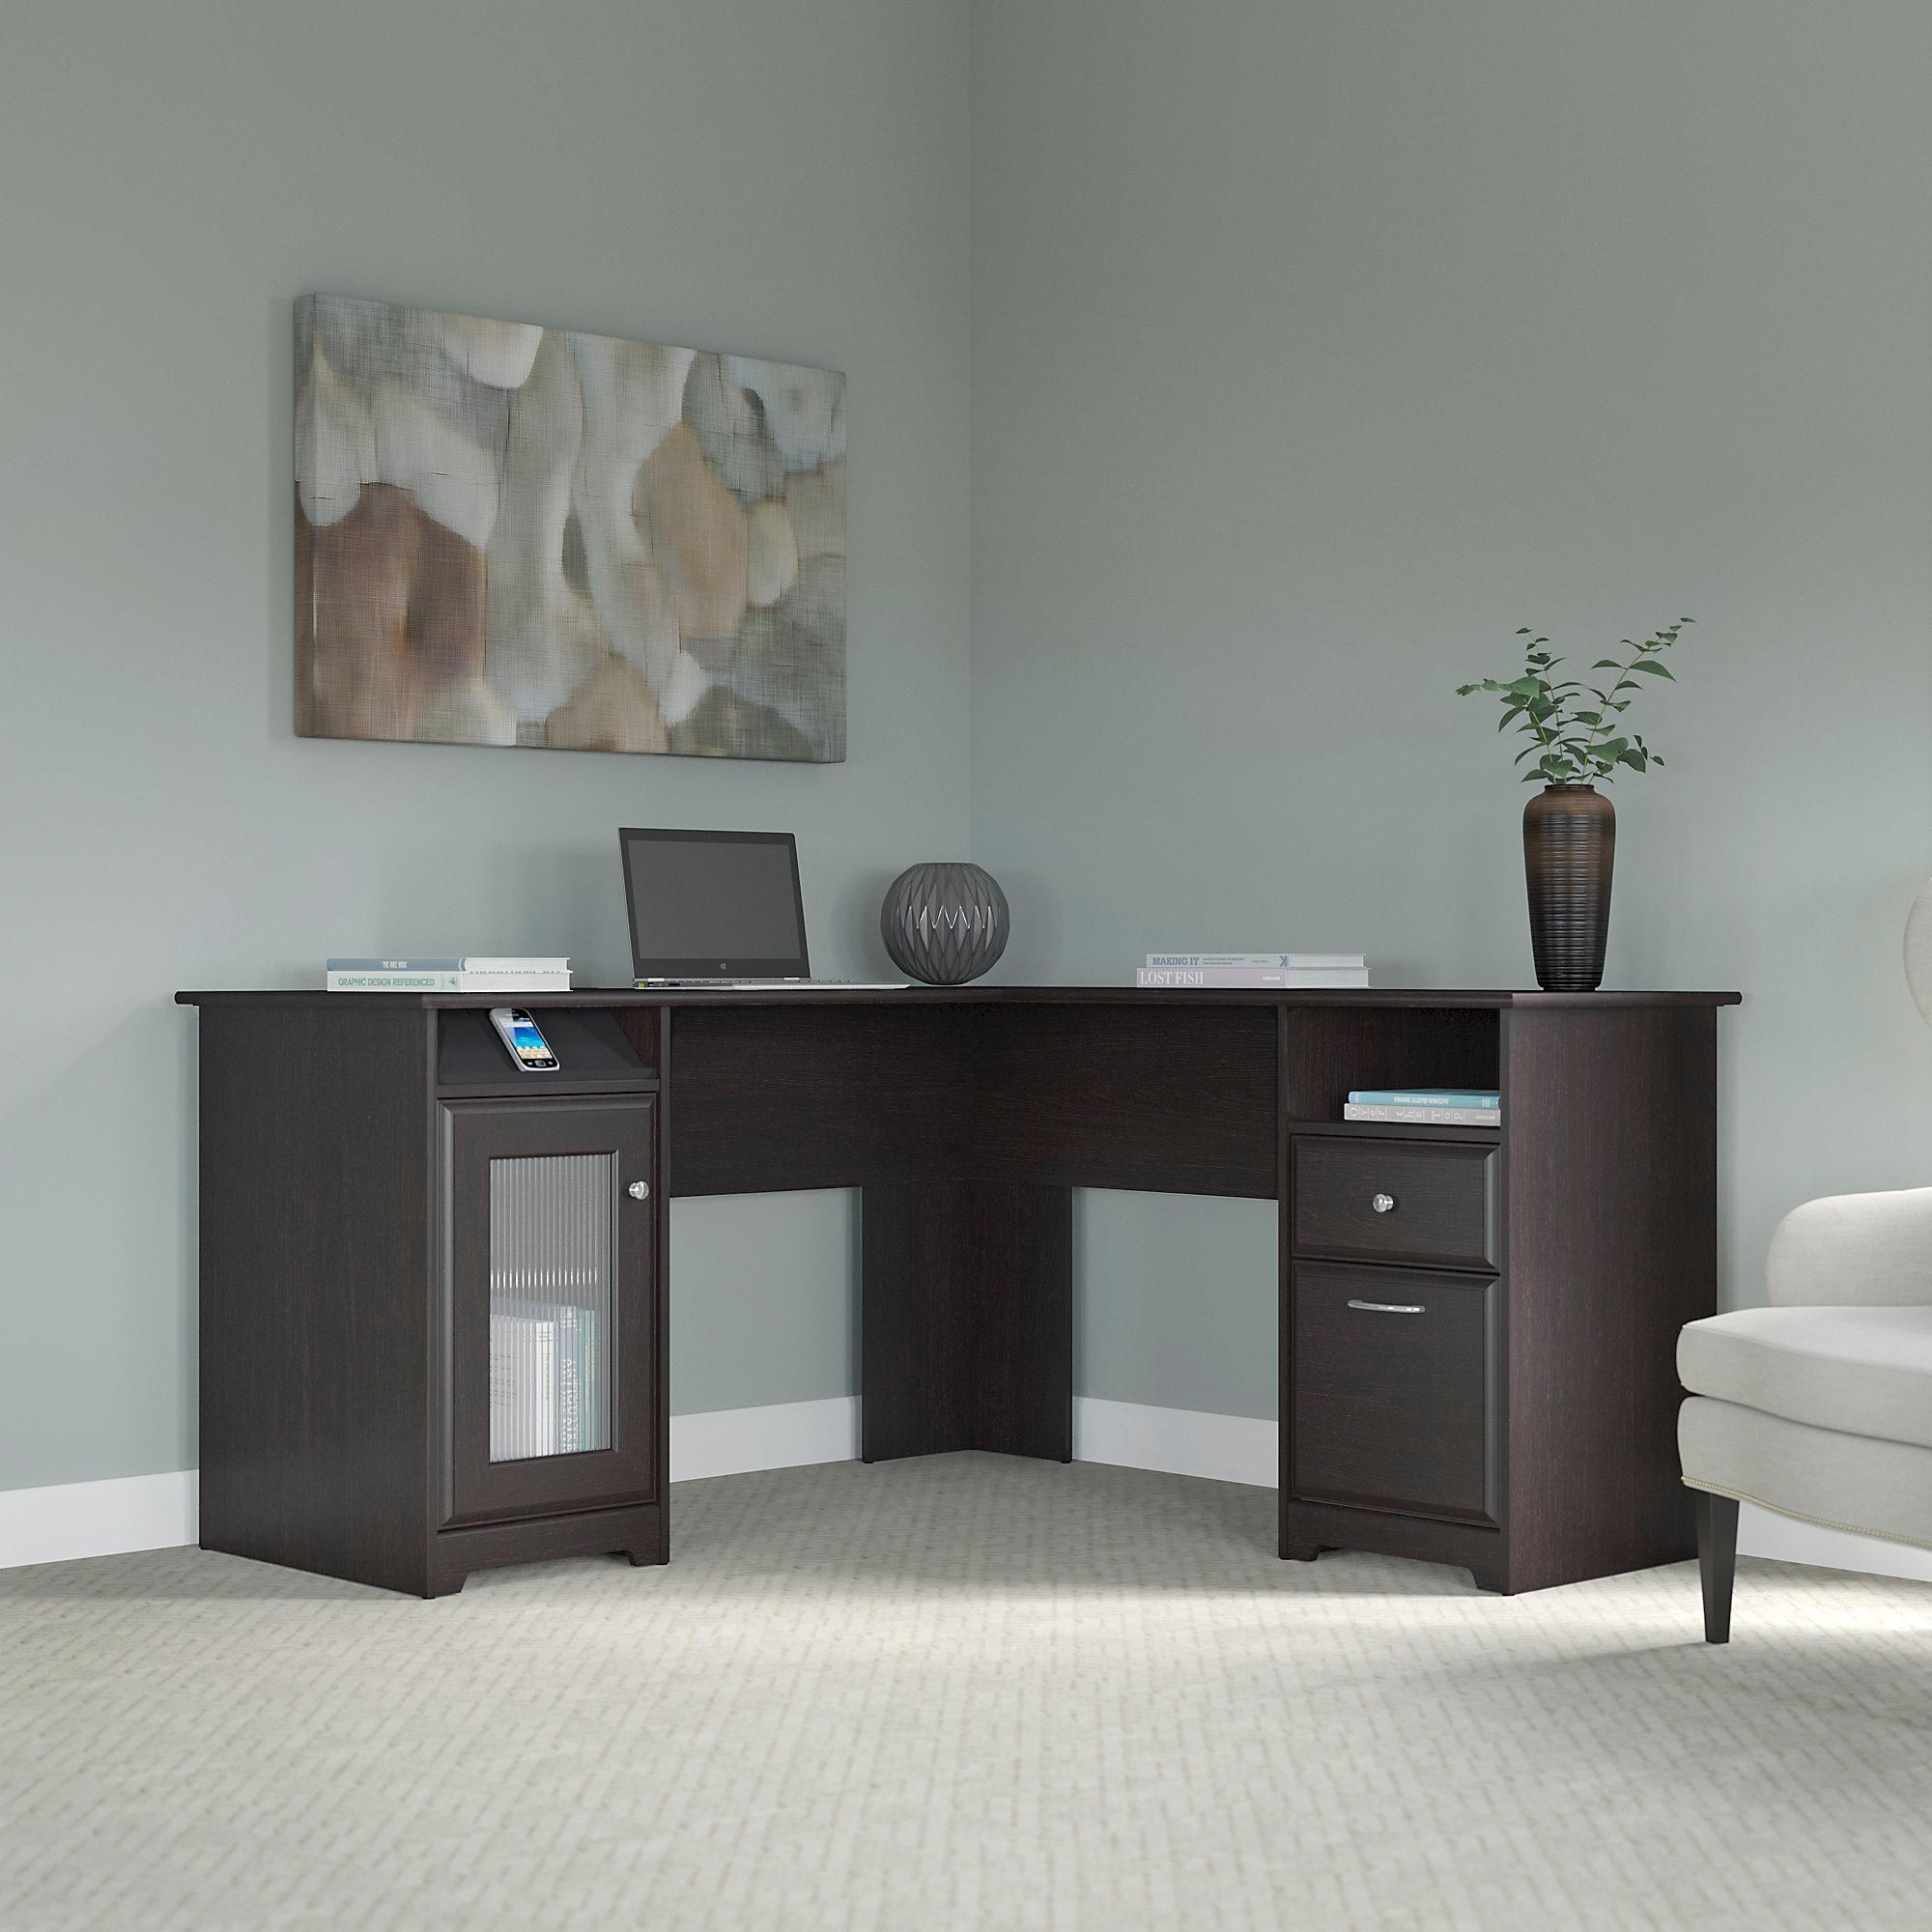 Bush Furniture, Cabot Collection, Office Furniture, Home Office, Desk,  Furniture,